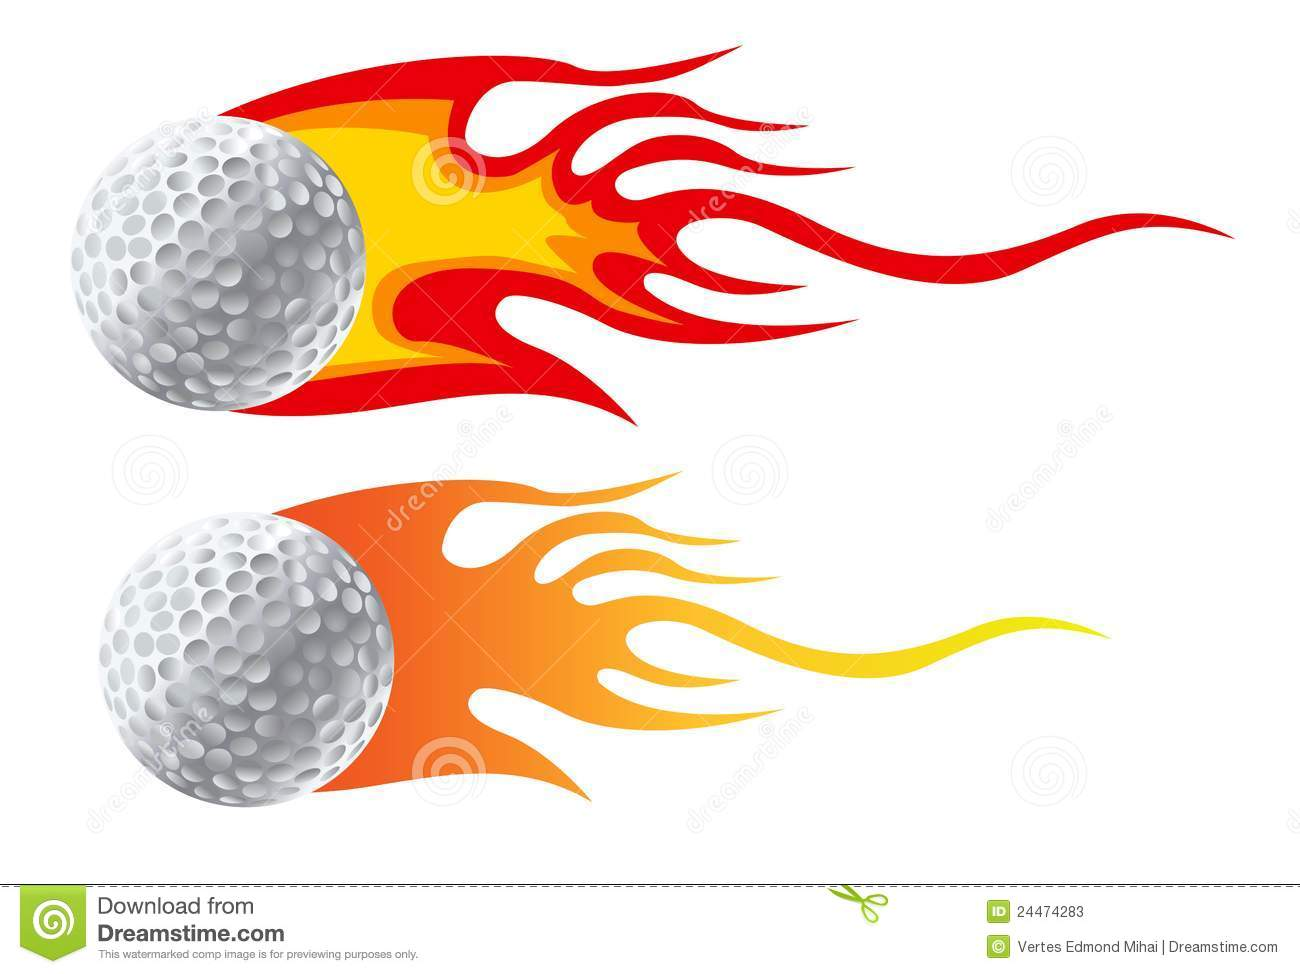 Flaming golf ball clipart image freeuse download Flaming golf ball clipart - ClipartFest image freeuse download